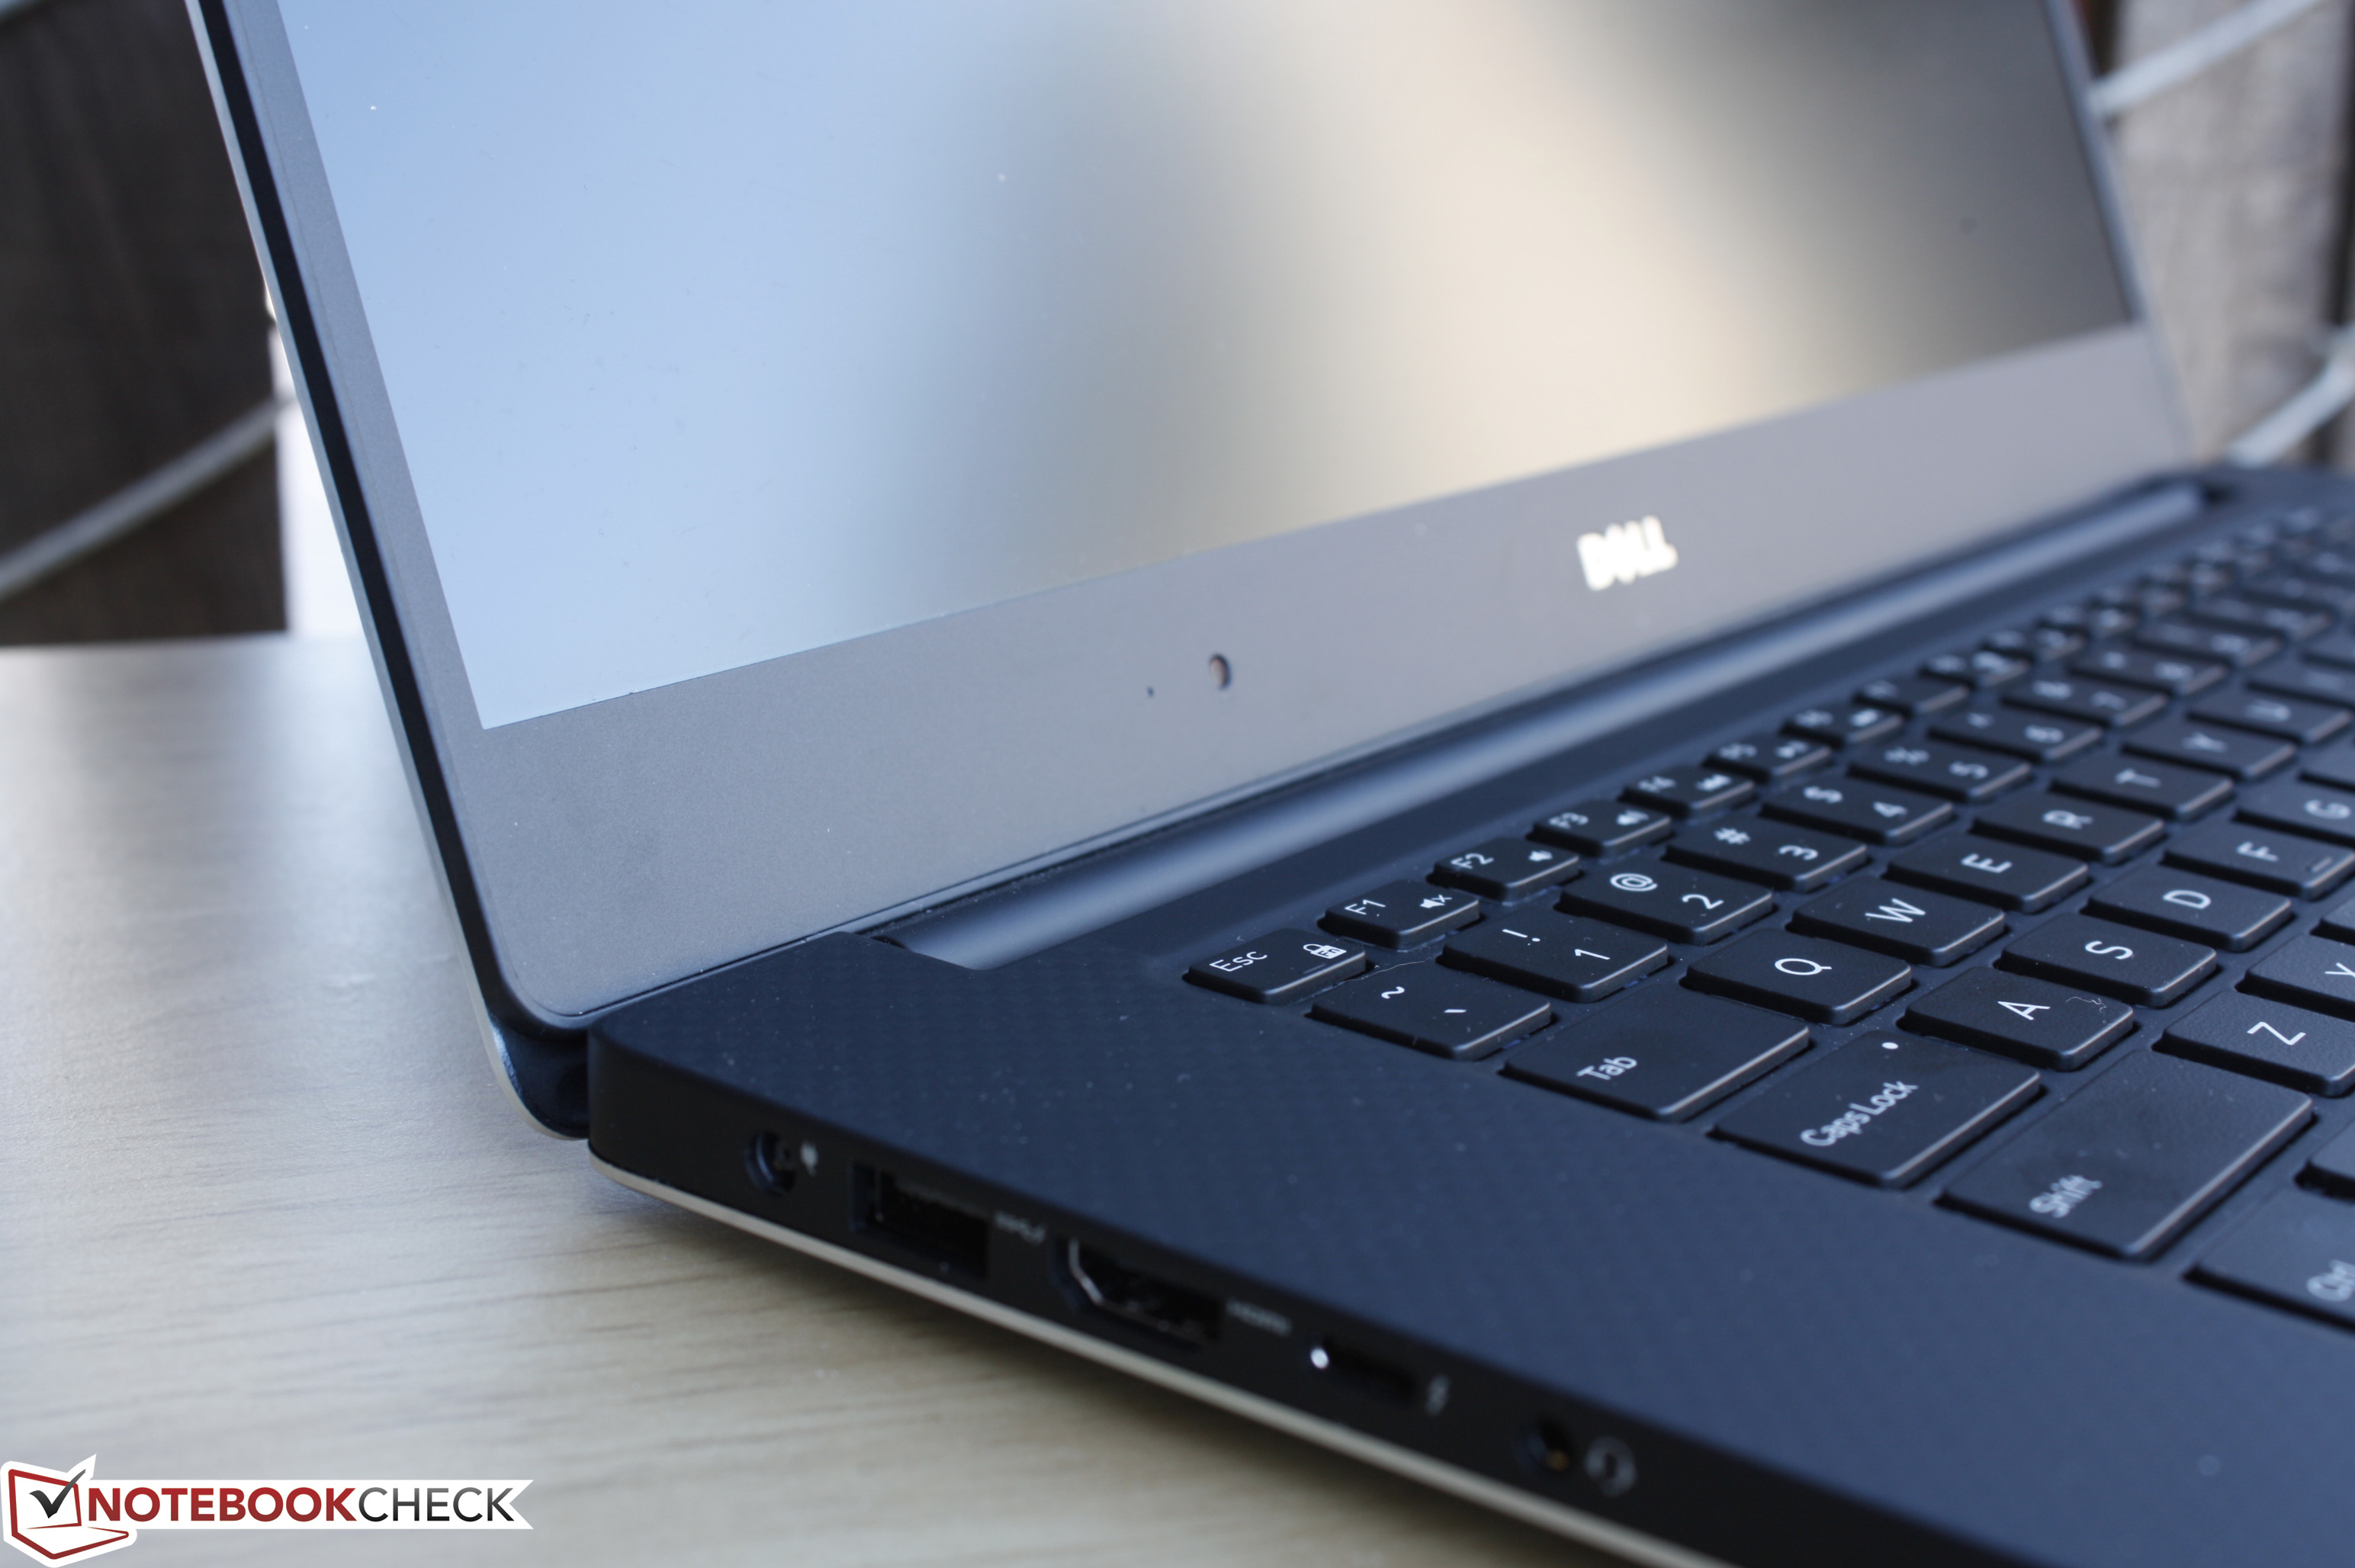 how to clean laptop screen without damaging it